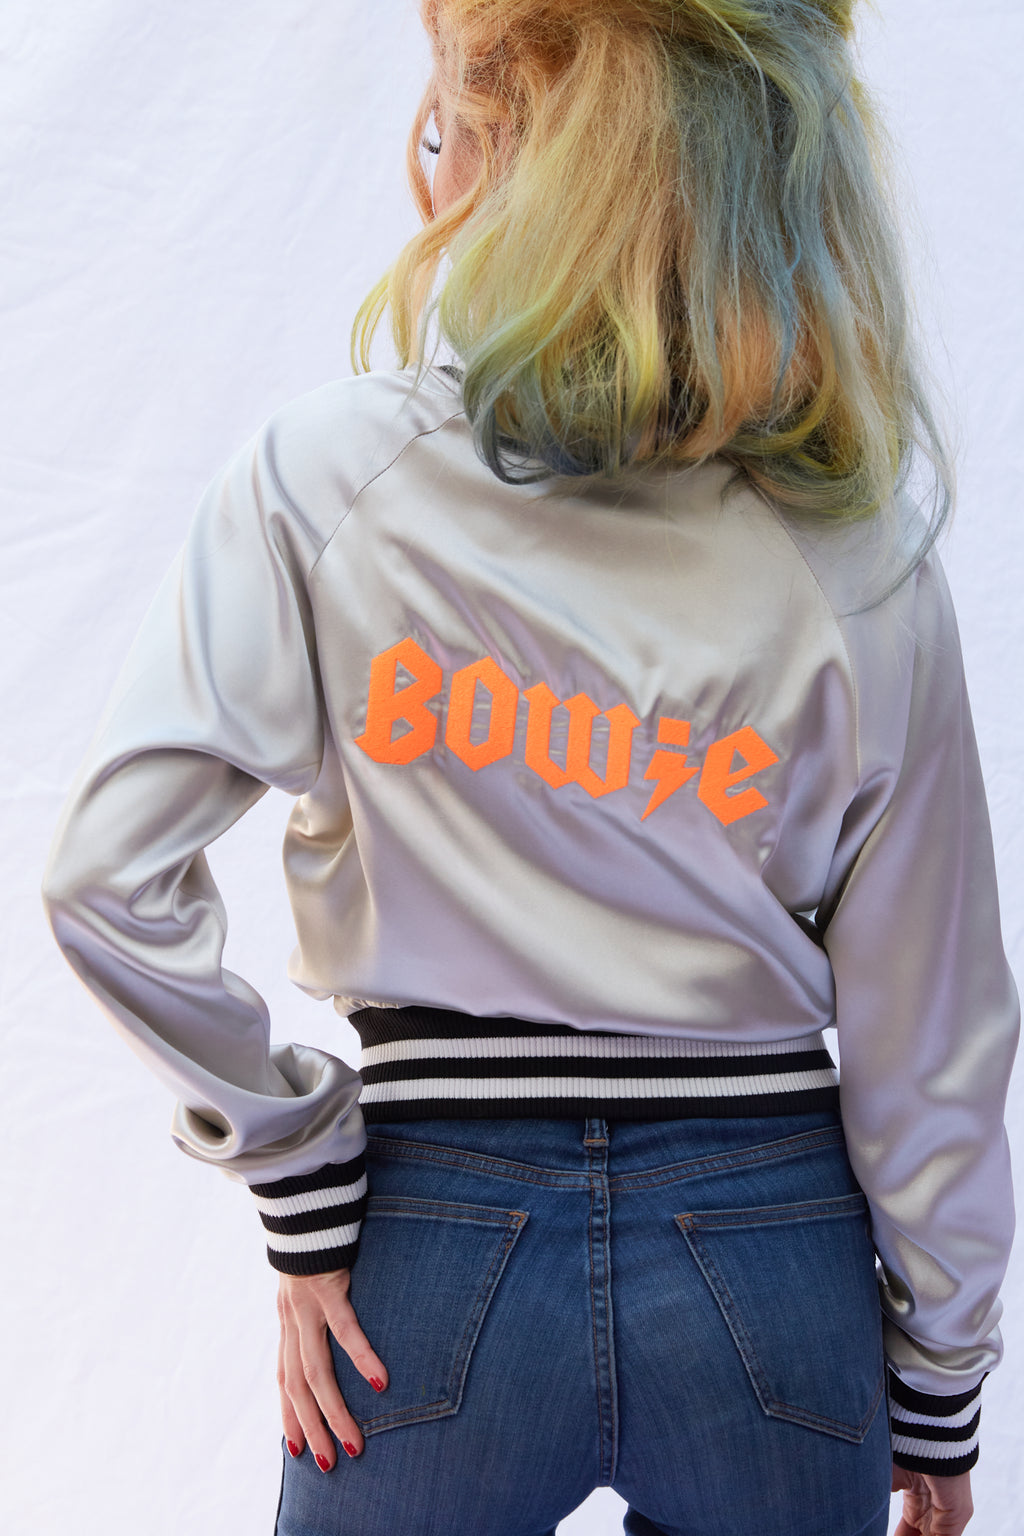 The Bowie Bomber